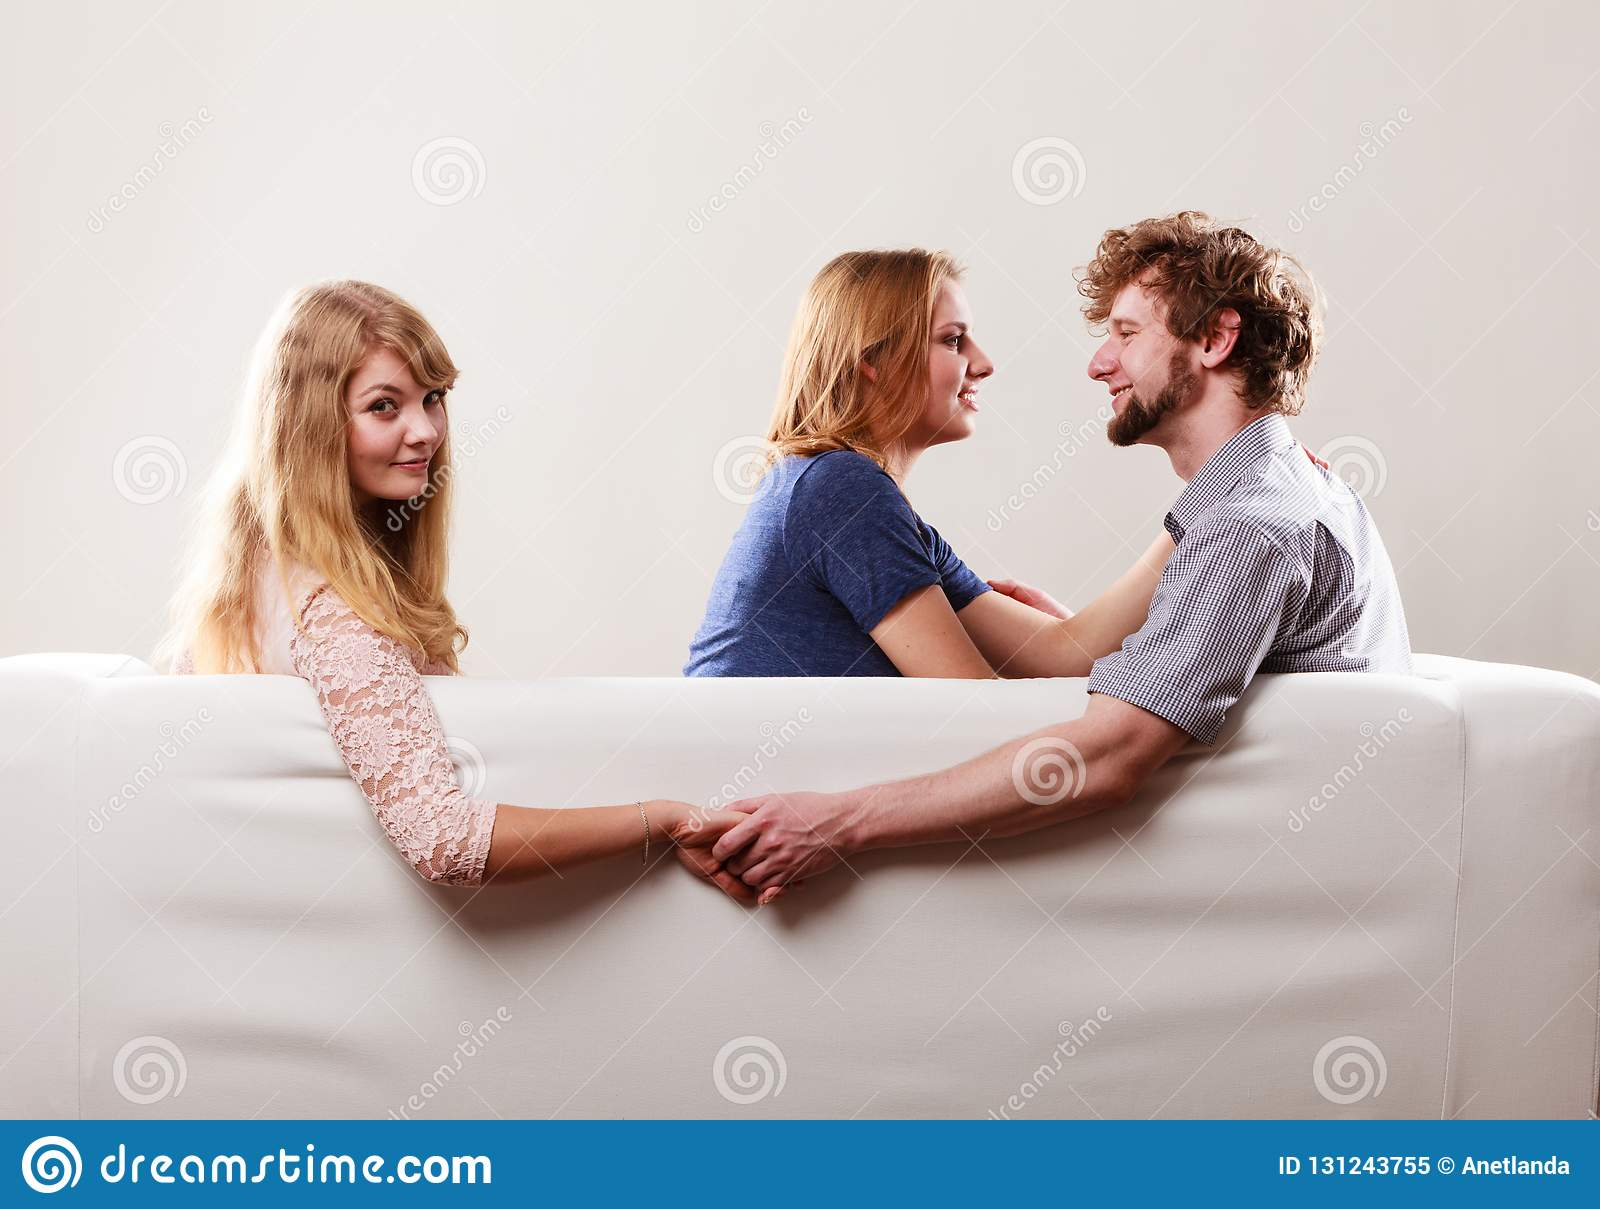 flirting vs cheating infidelity images photos gallery pictures